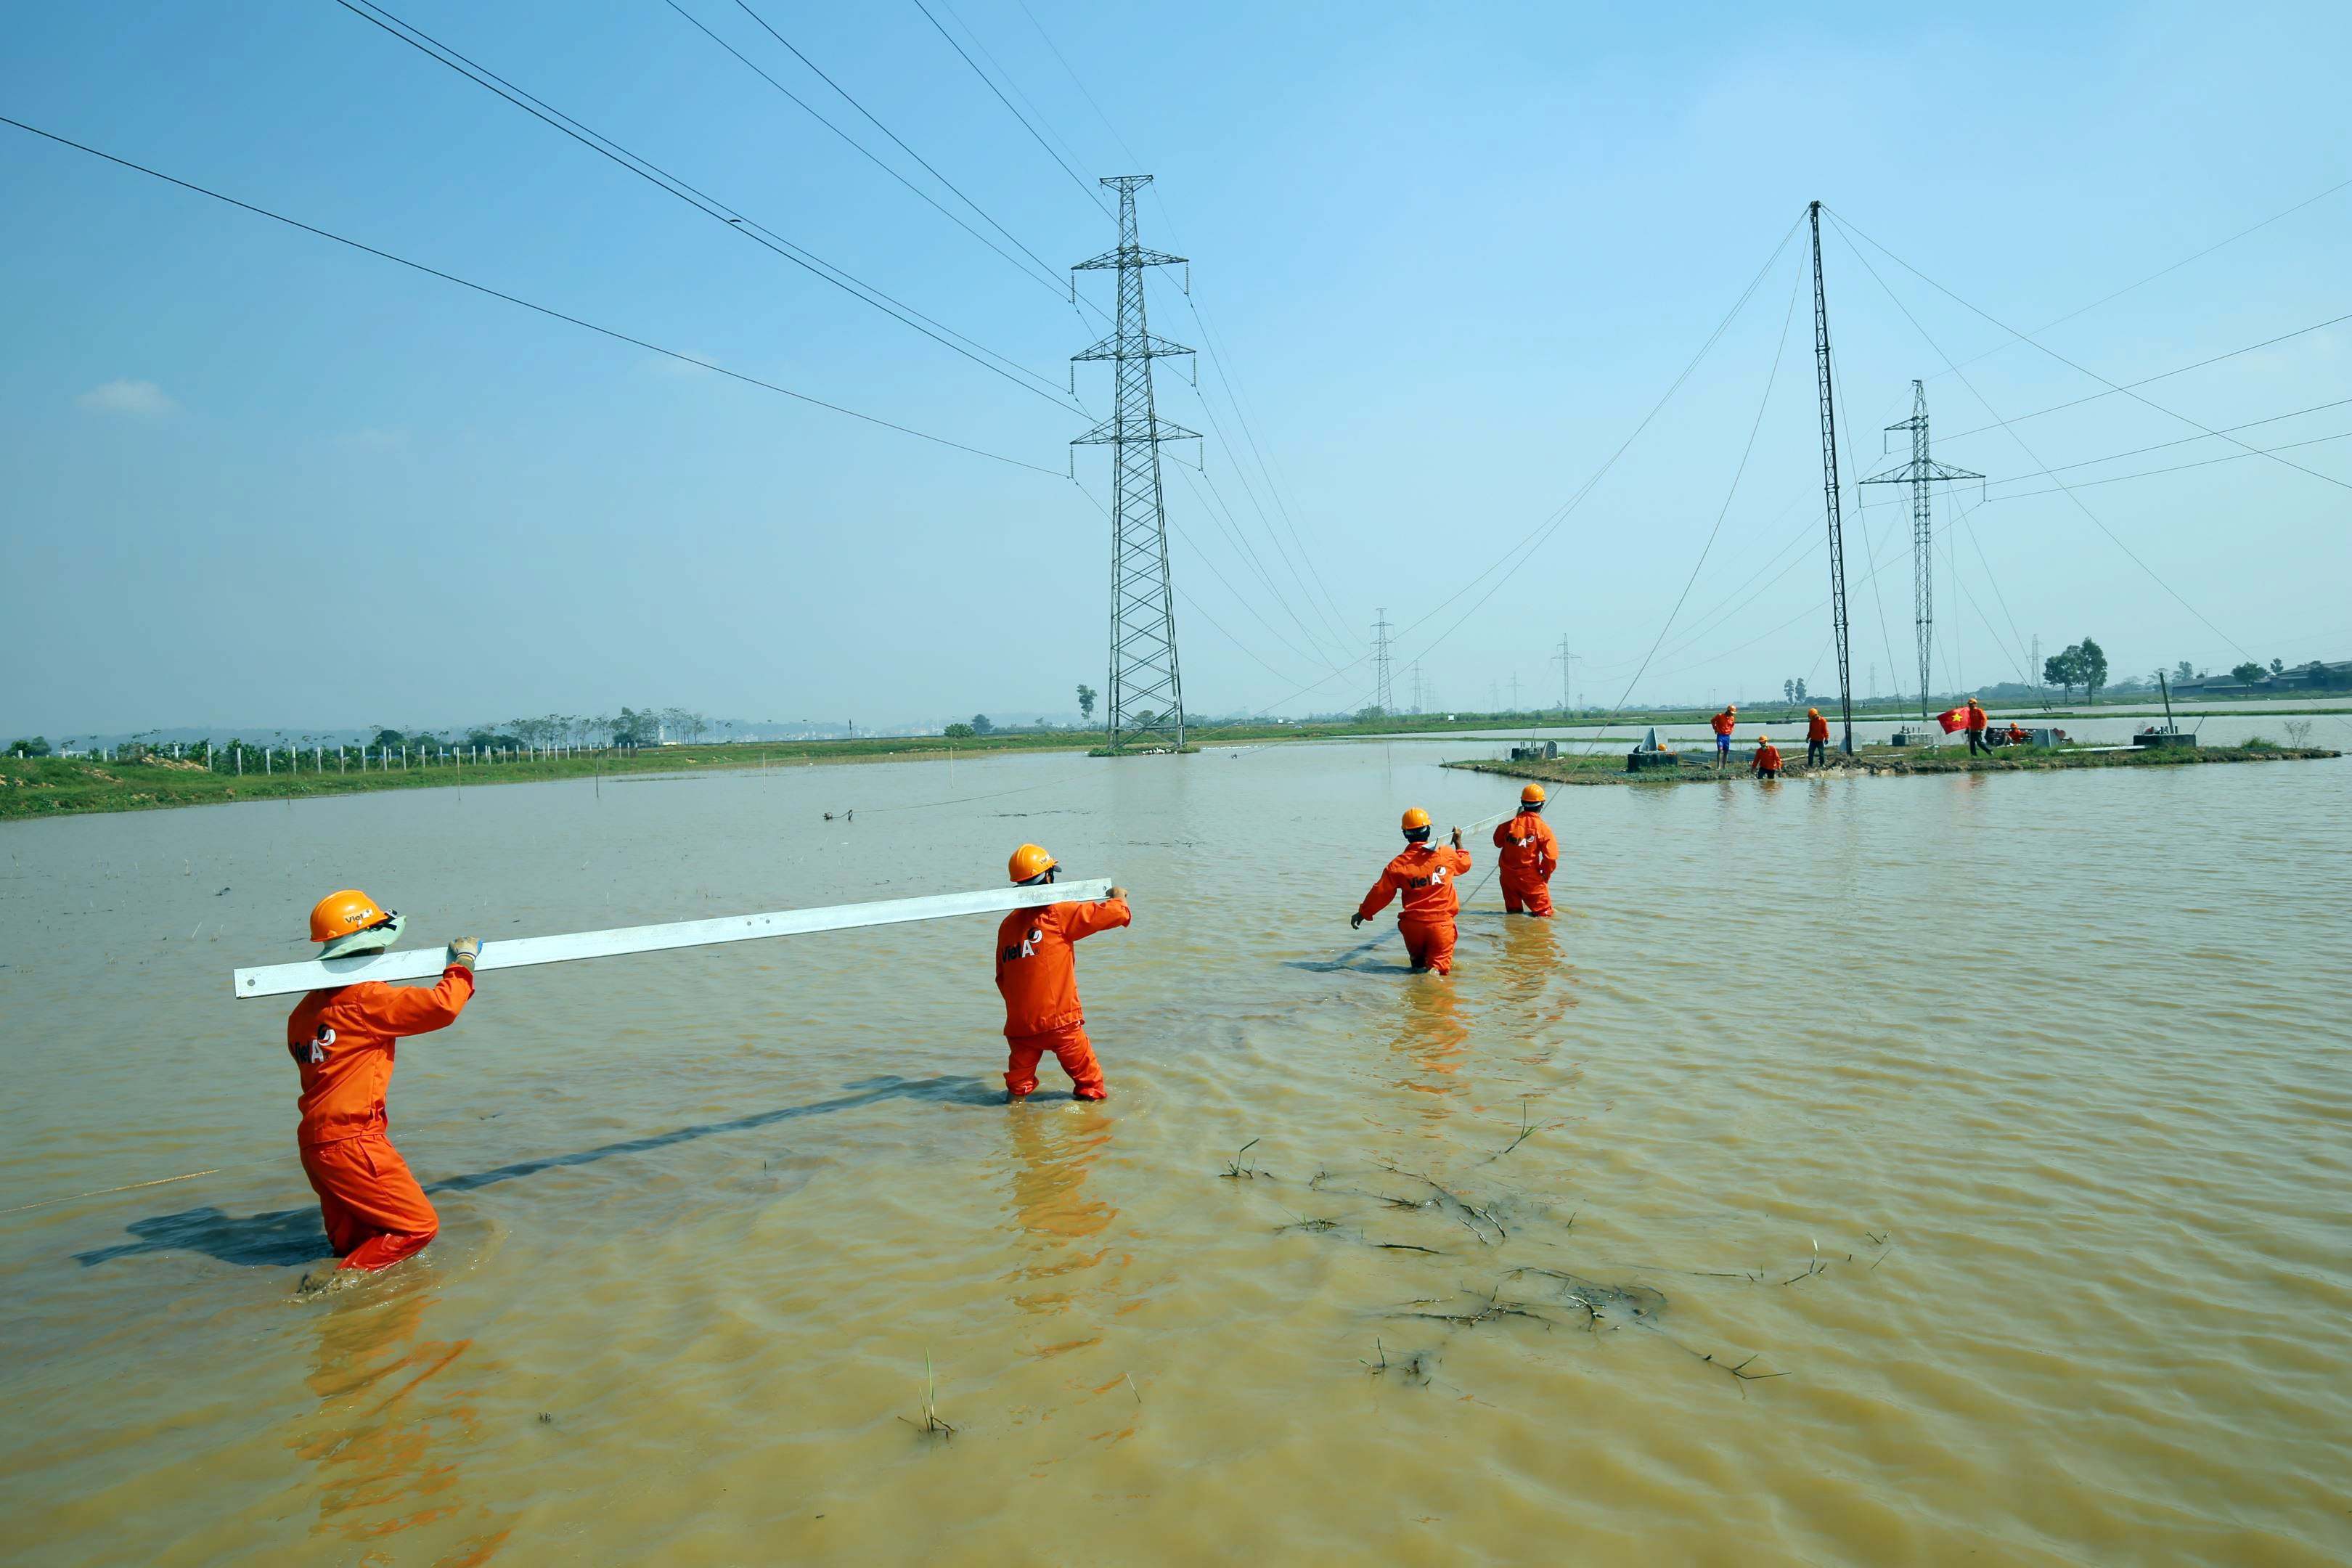 Many power grid projects are behind schedule due to the impact of Covid-19 pandemic